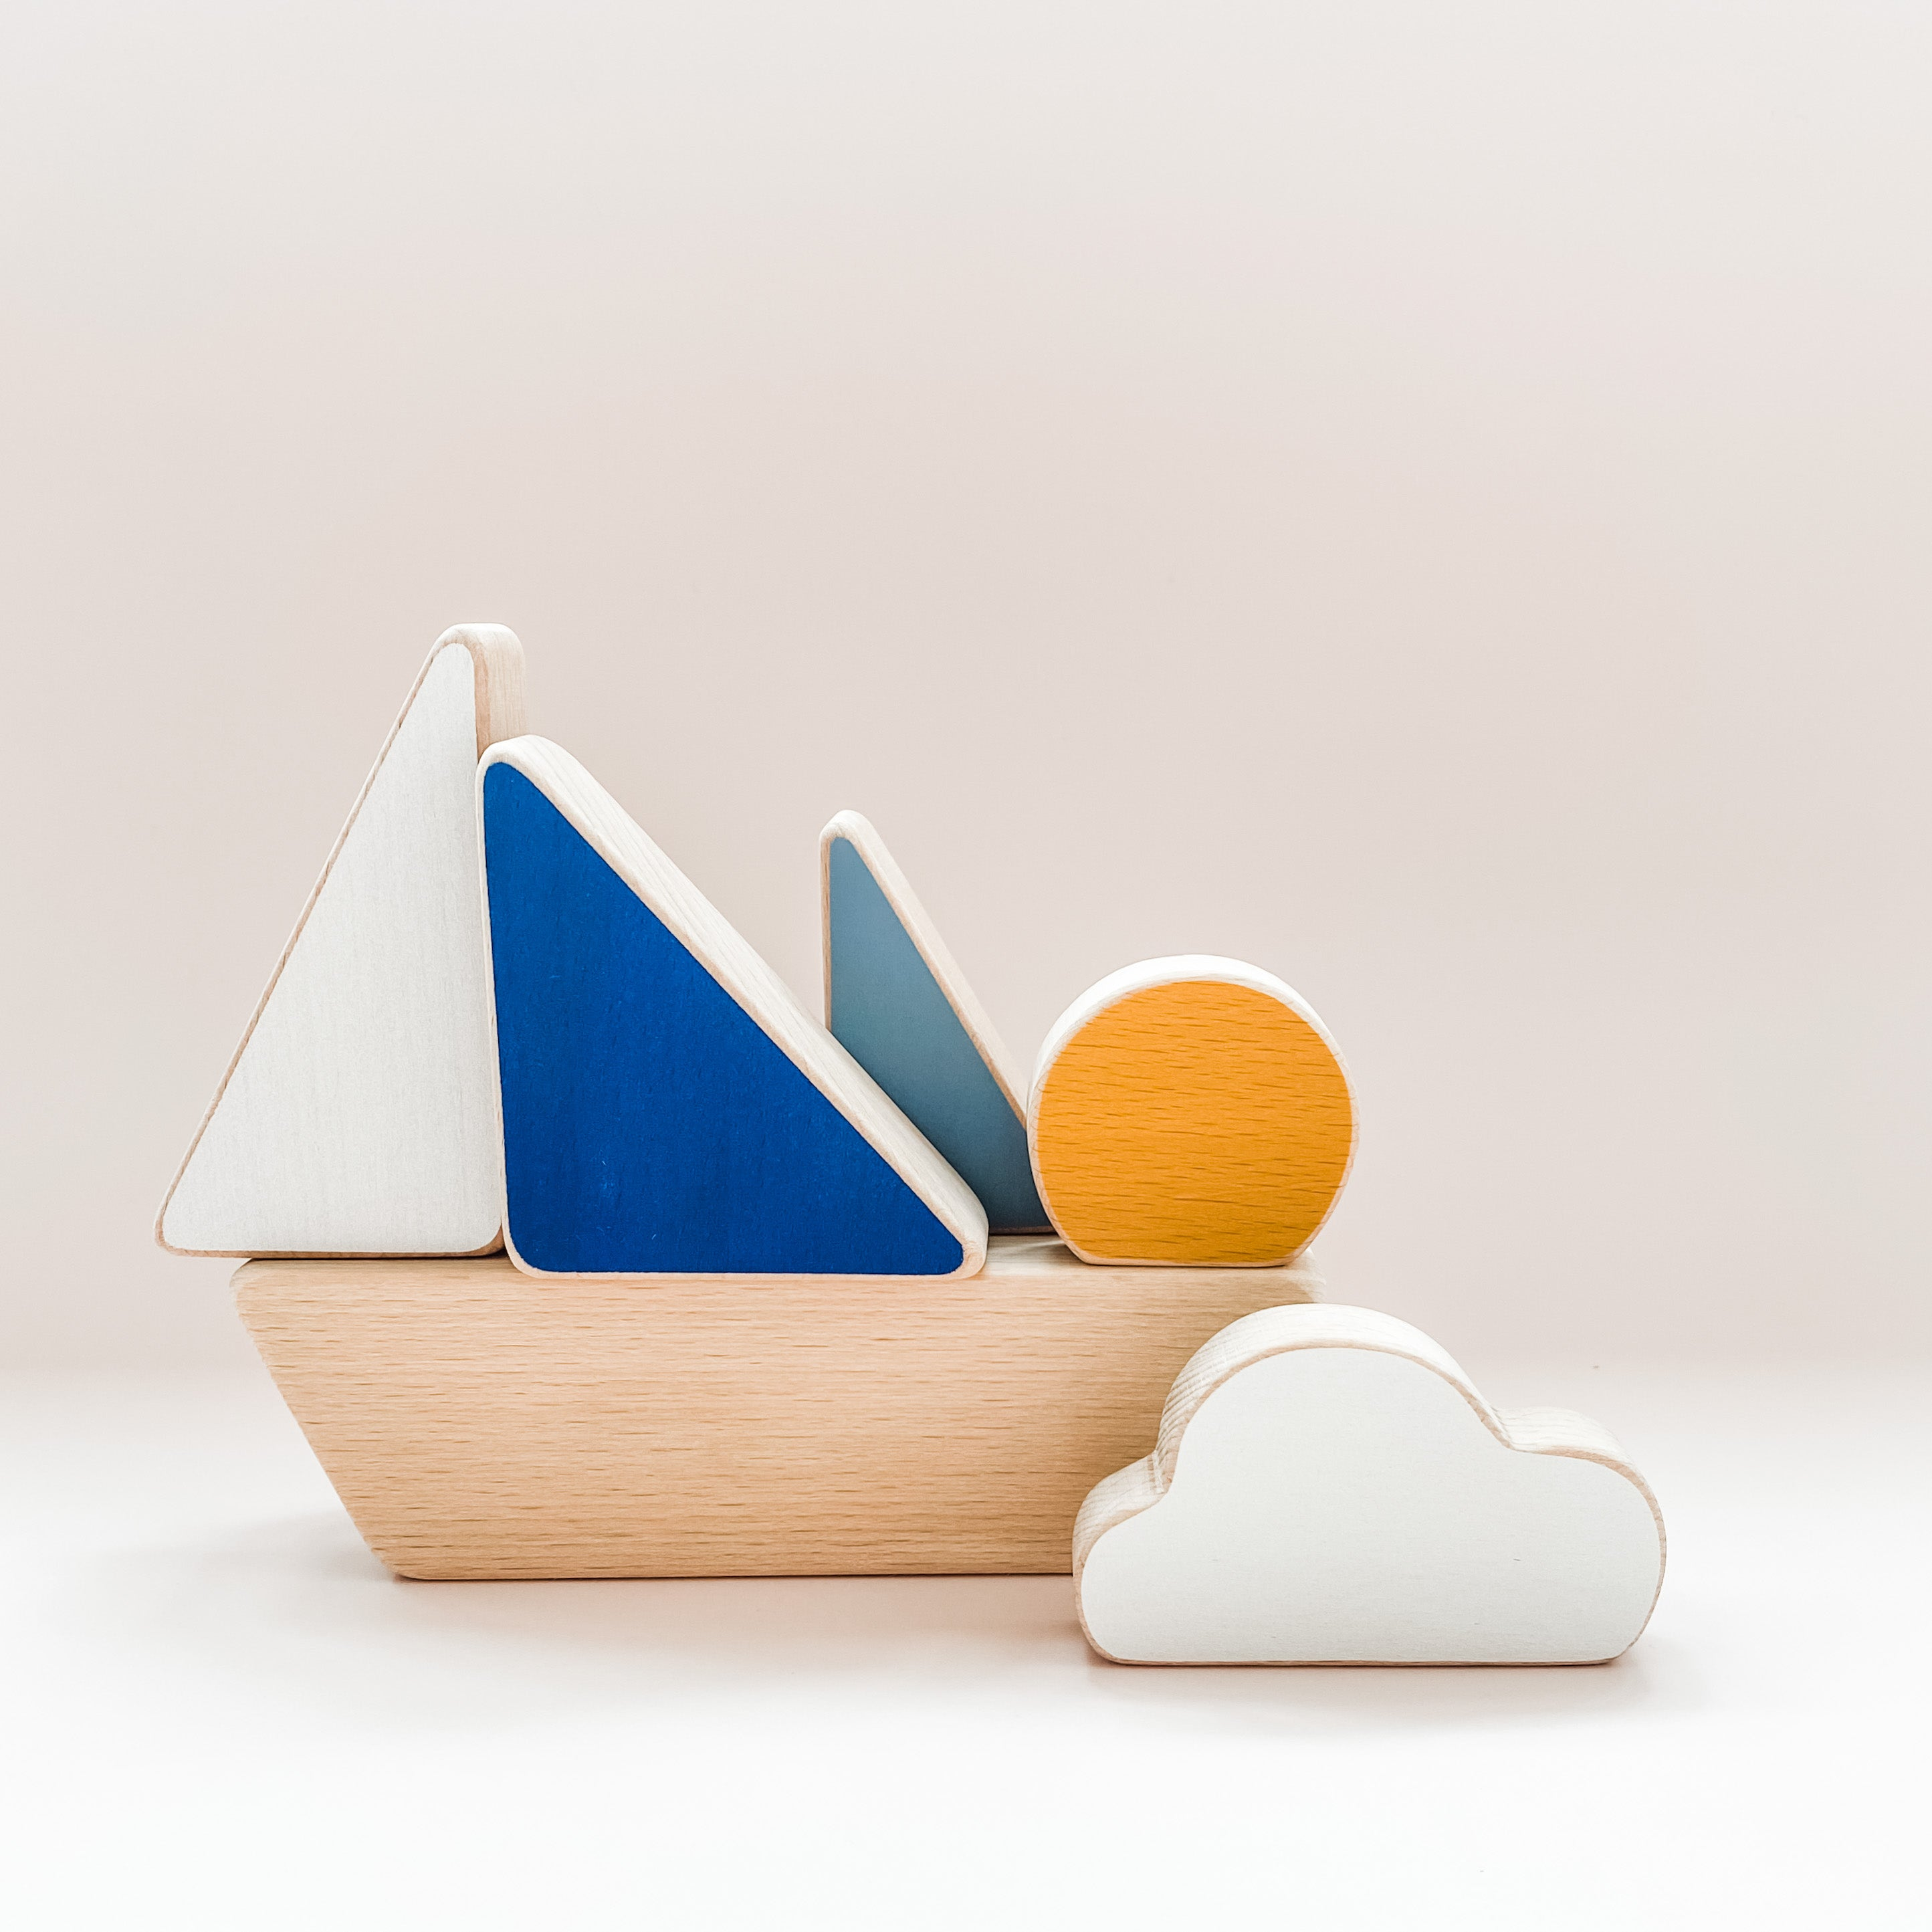 The Wandering Workshop Minimalistic Stacking Boat Toy